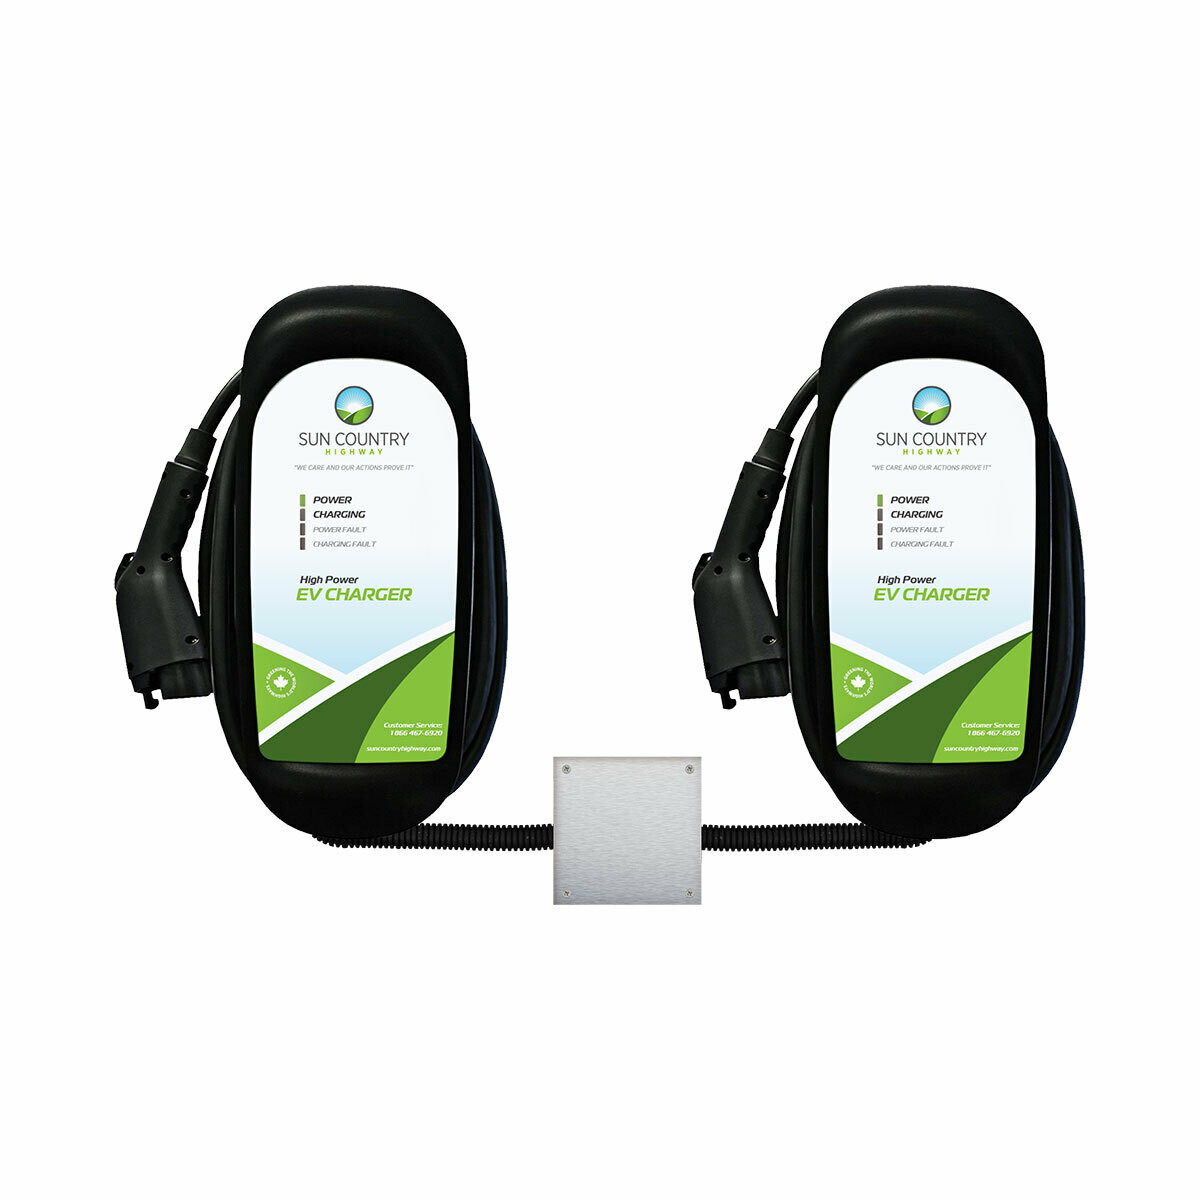 EV40 Share2 Bundle Charger with ChargeGuard